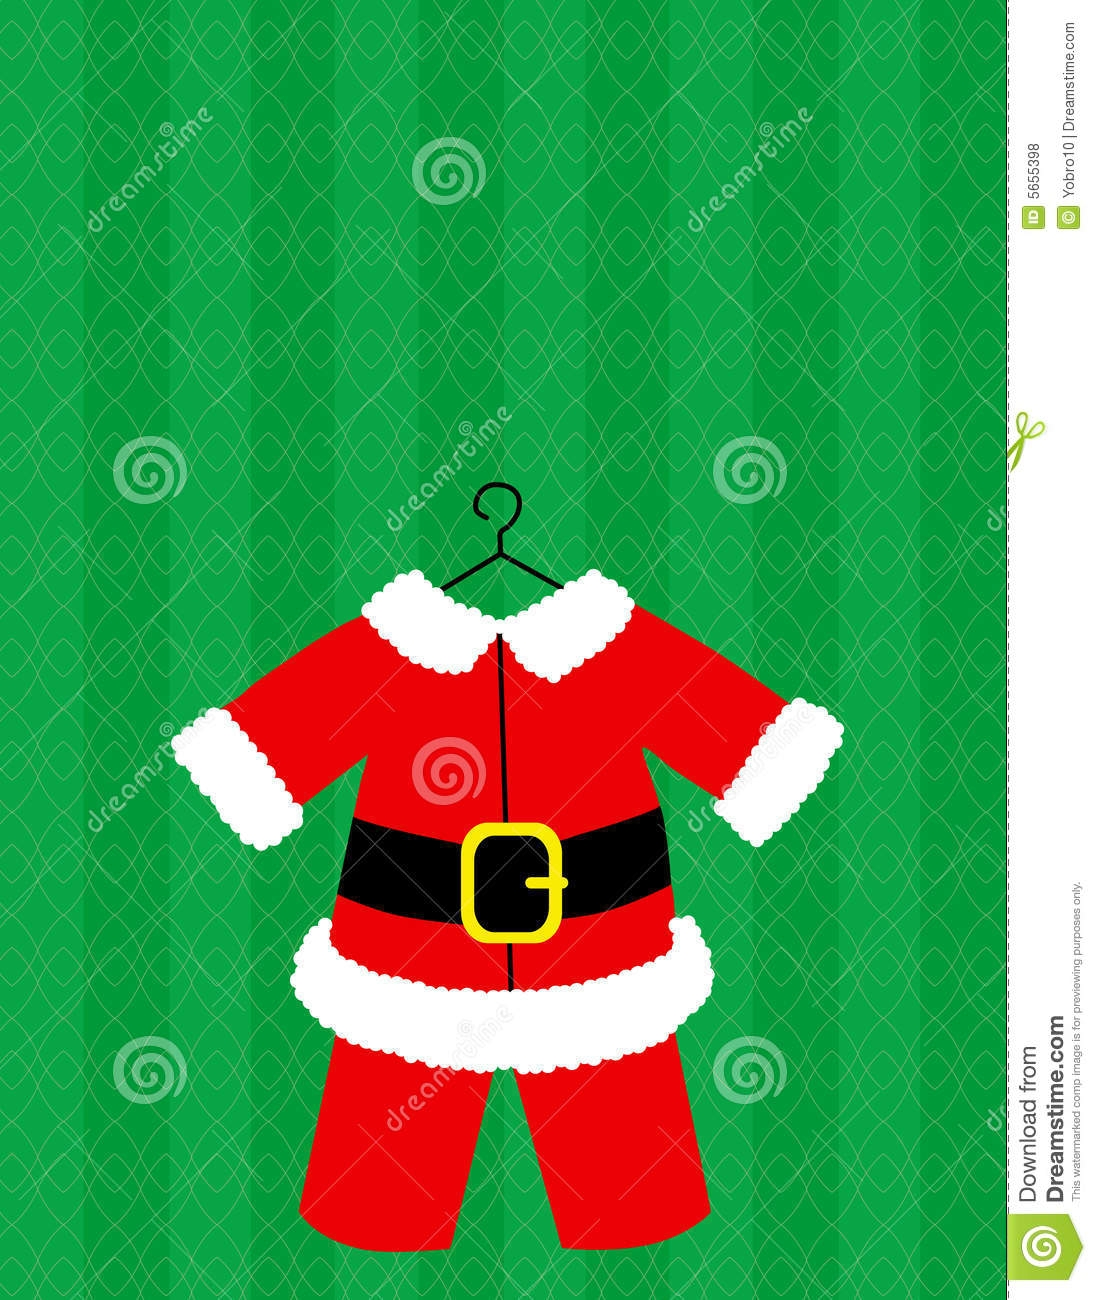 Santa claus suit clipart.